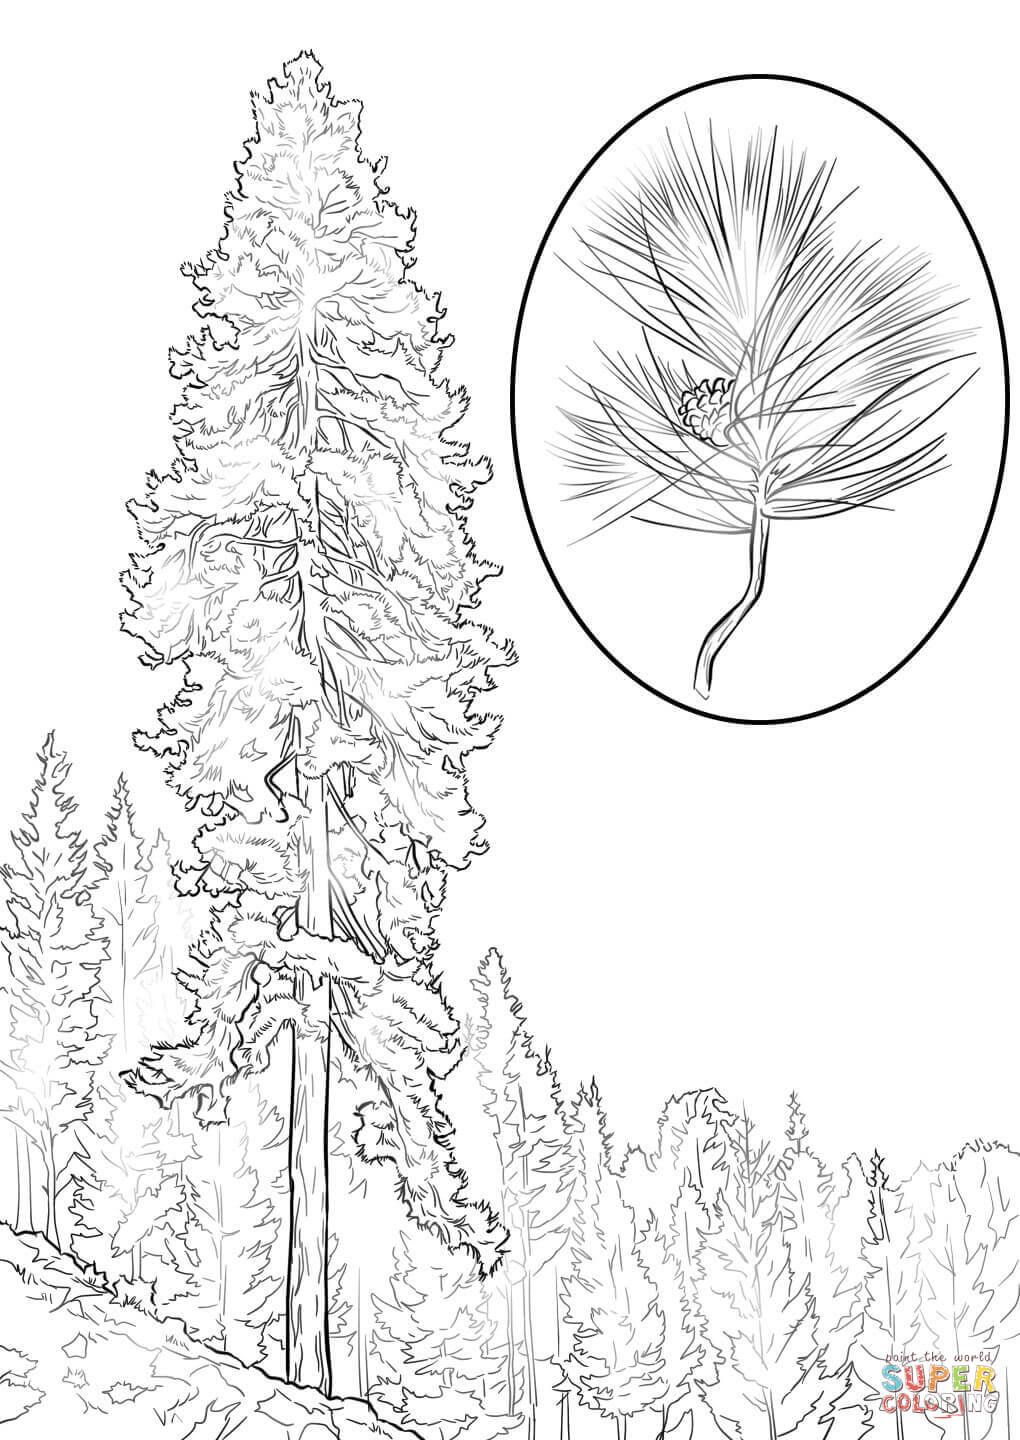 Ponderosa Pine Coloring Page From Pine Trees Category Select From 27522 Printable Crafts Of Carto Tree Coloring Page Bird Coloring Pages Flower Coloring Pages